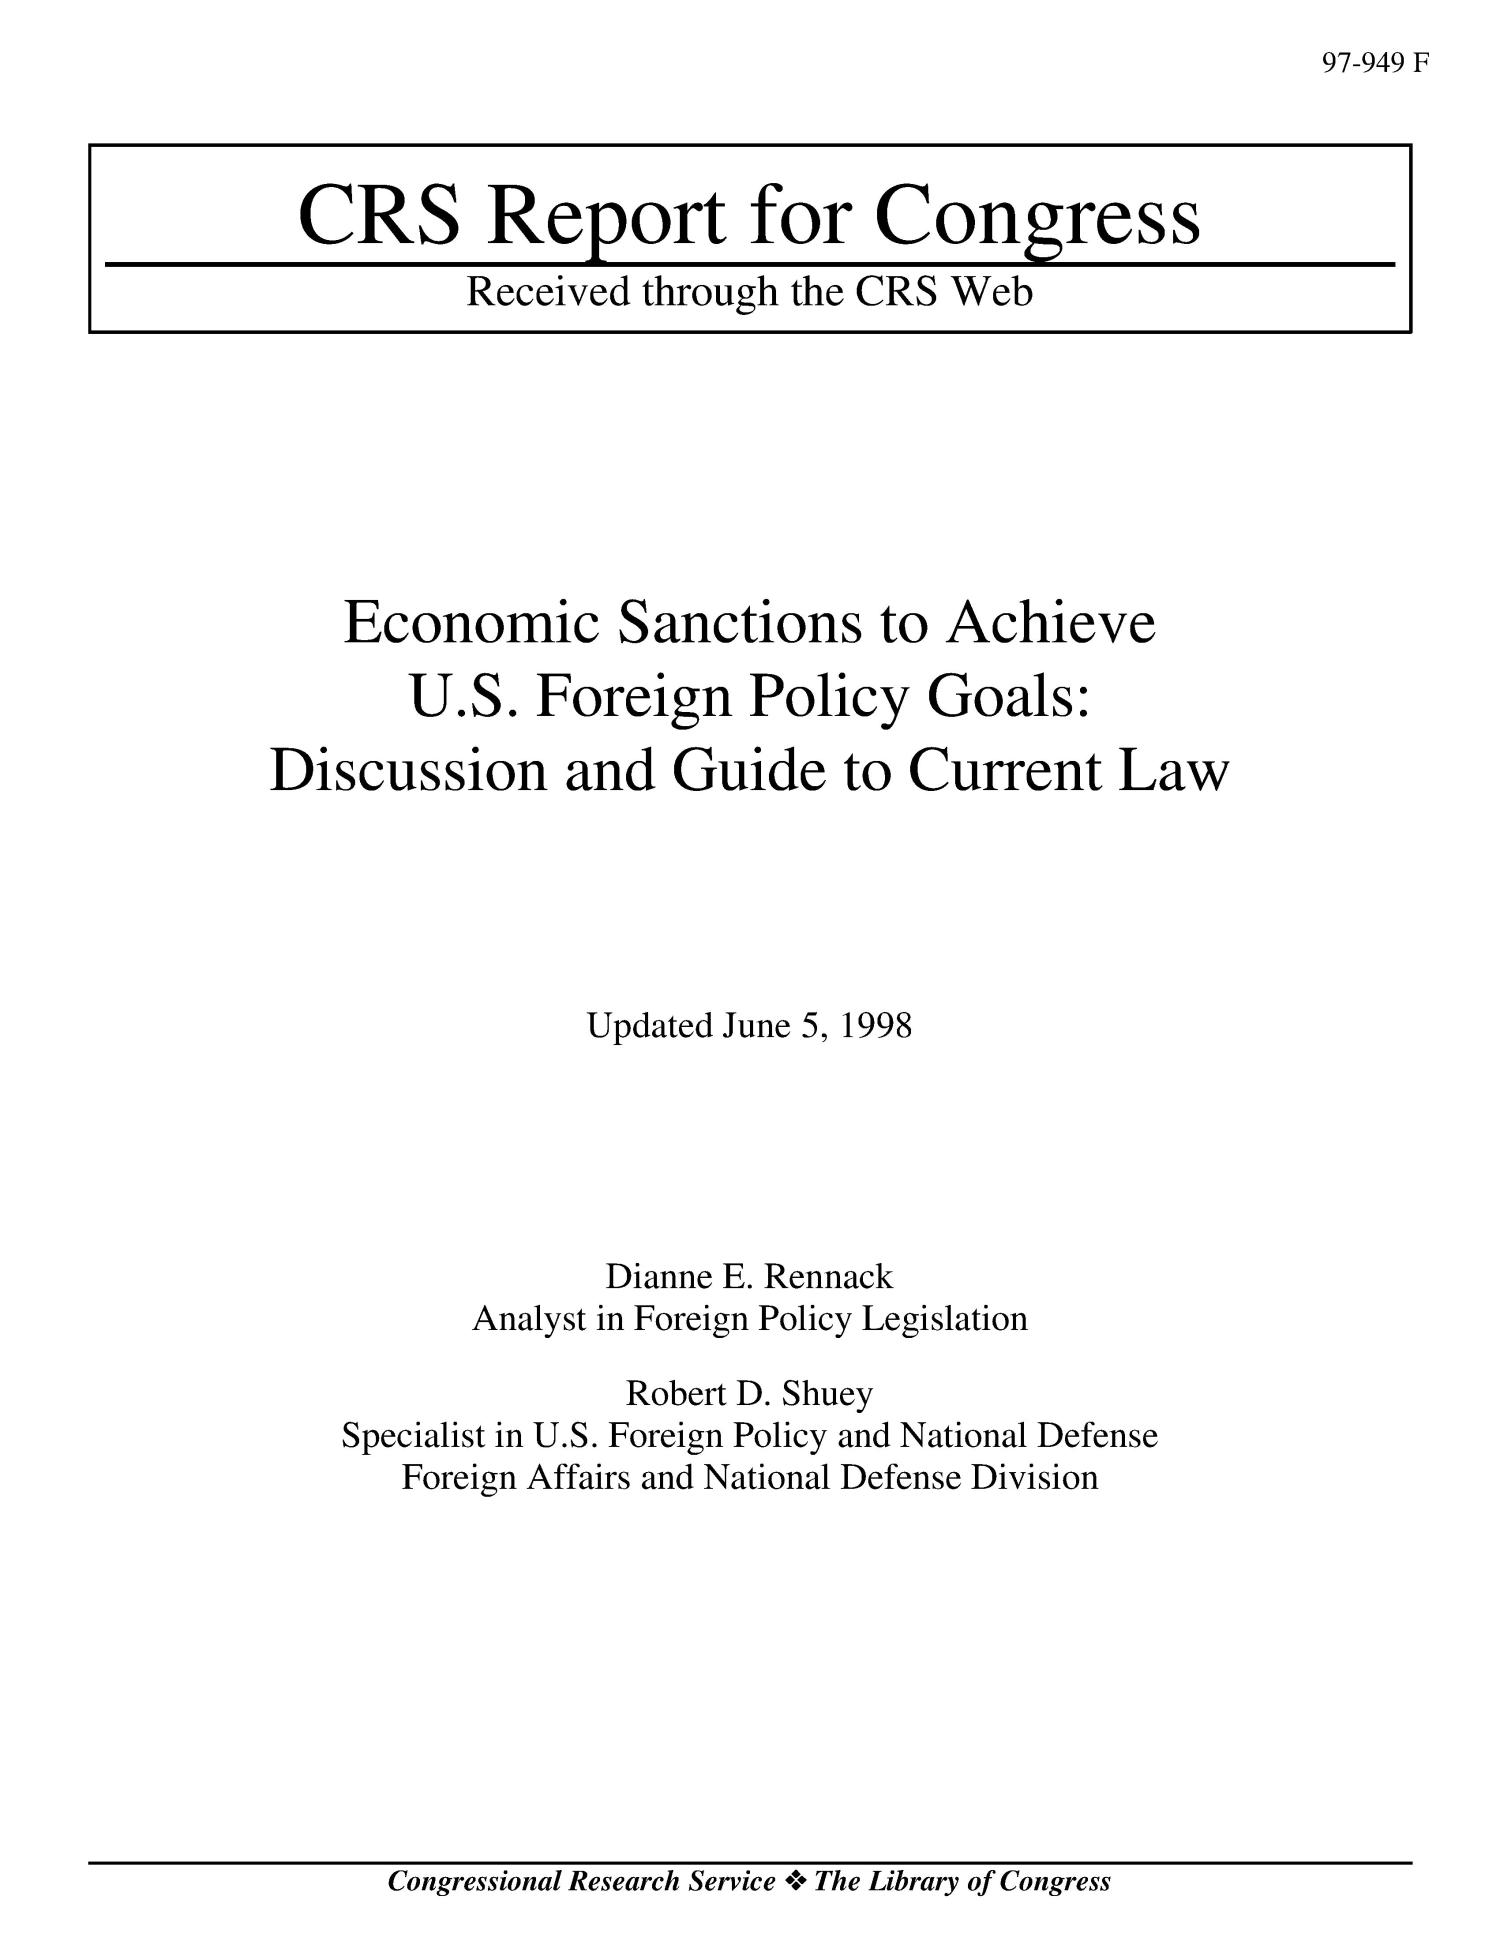 Economic Sanctions To Achieve Us Foreign Policy Goals Discussion Current Law And Guide Digital Library